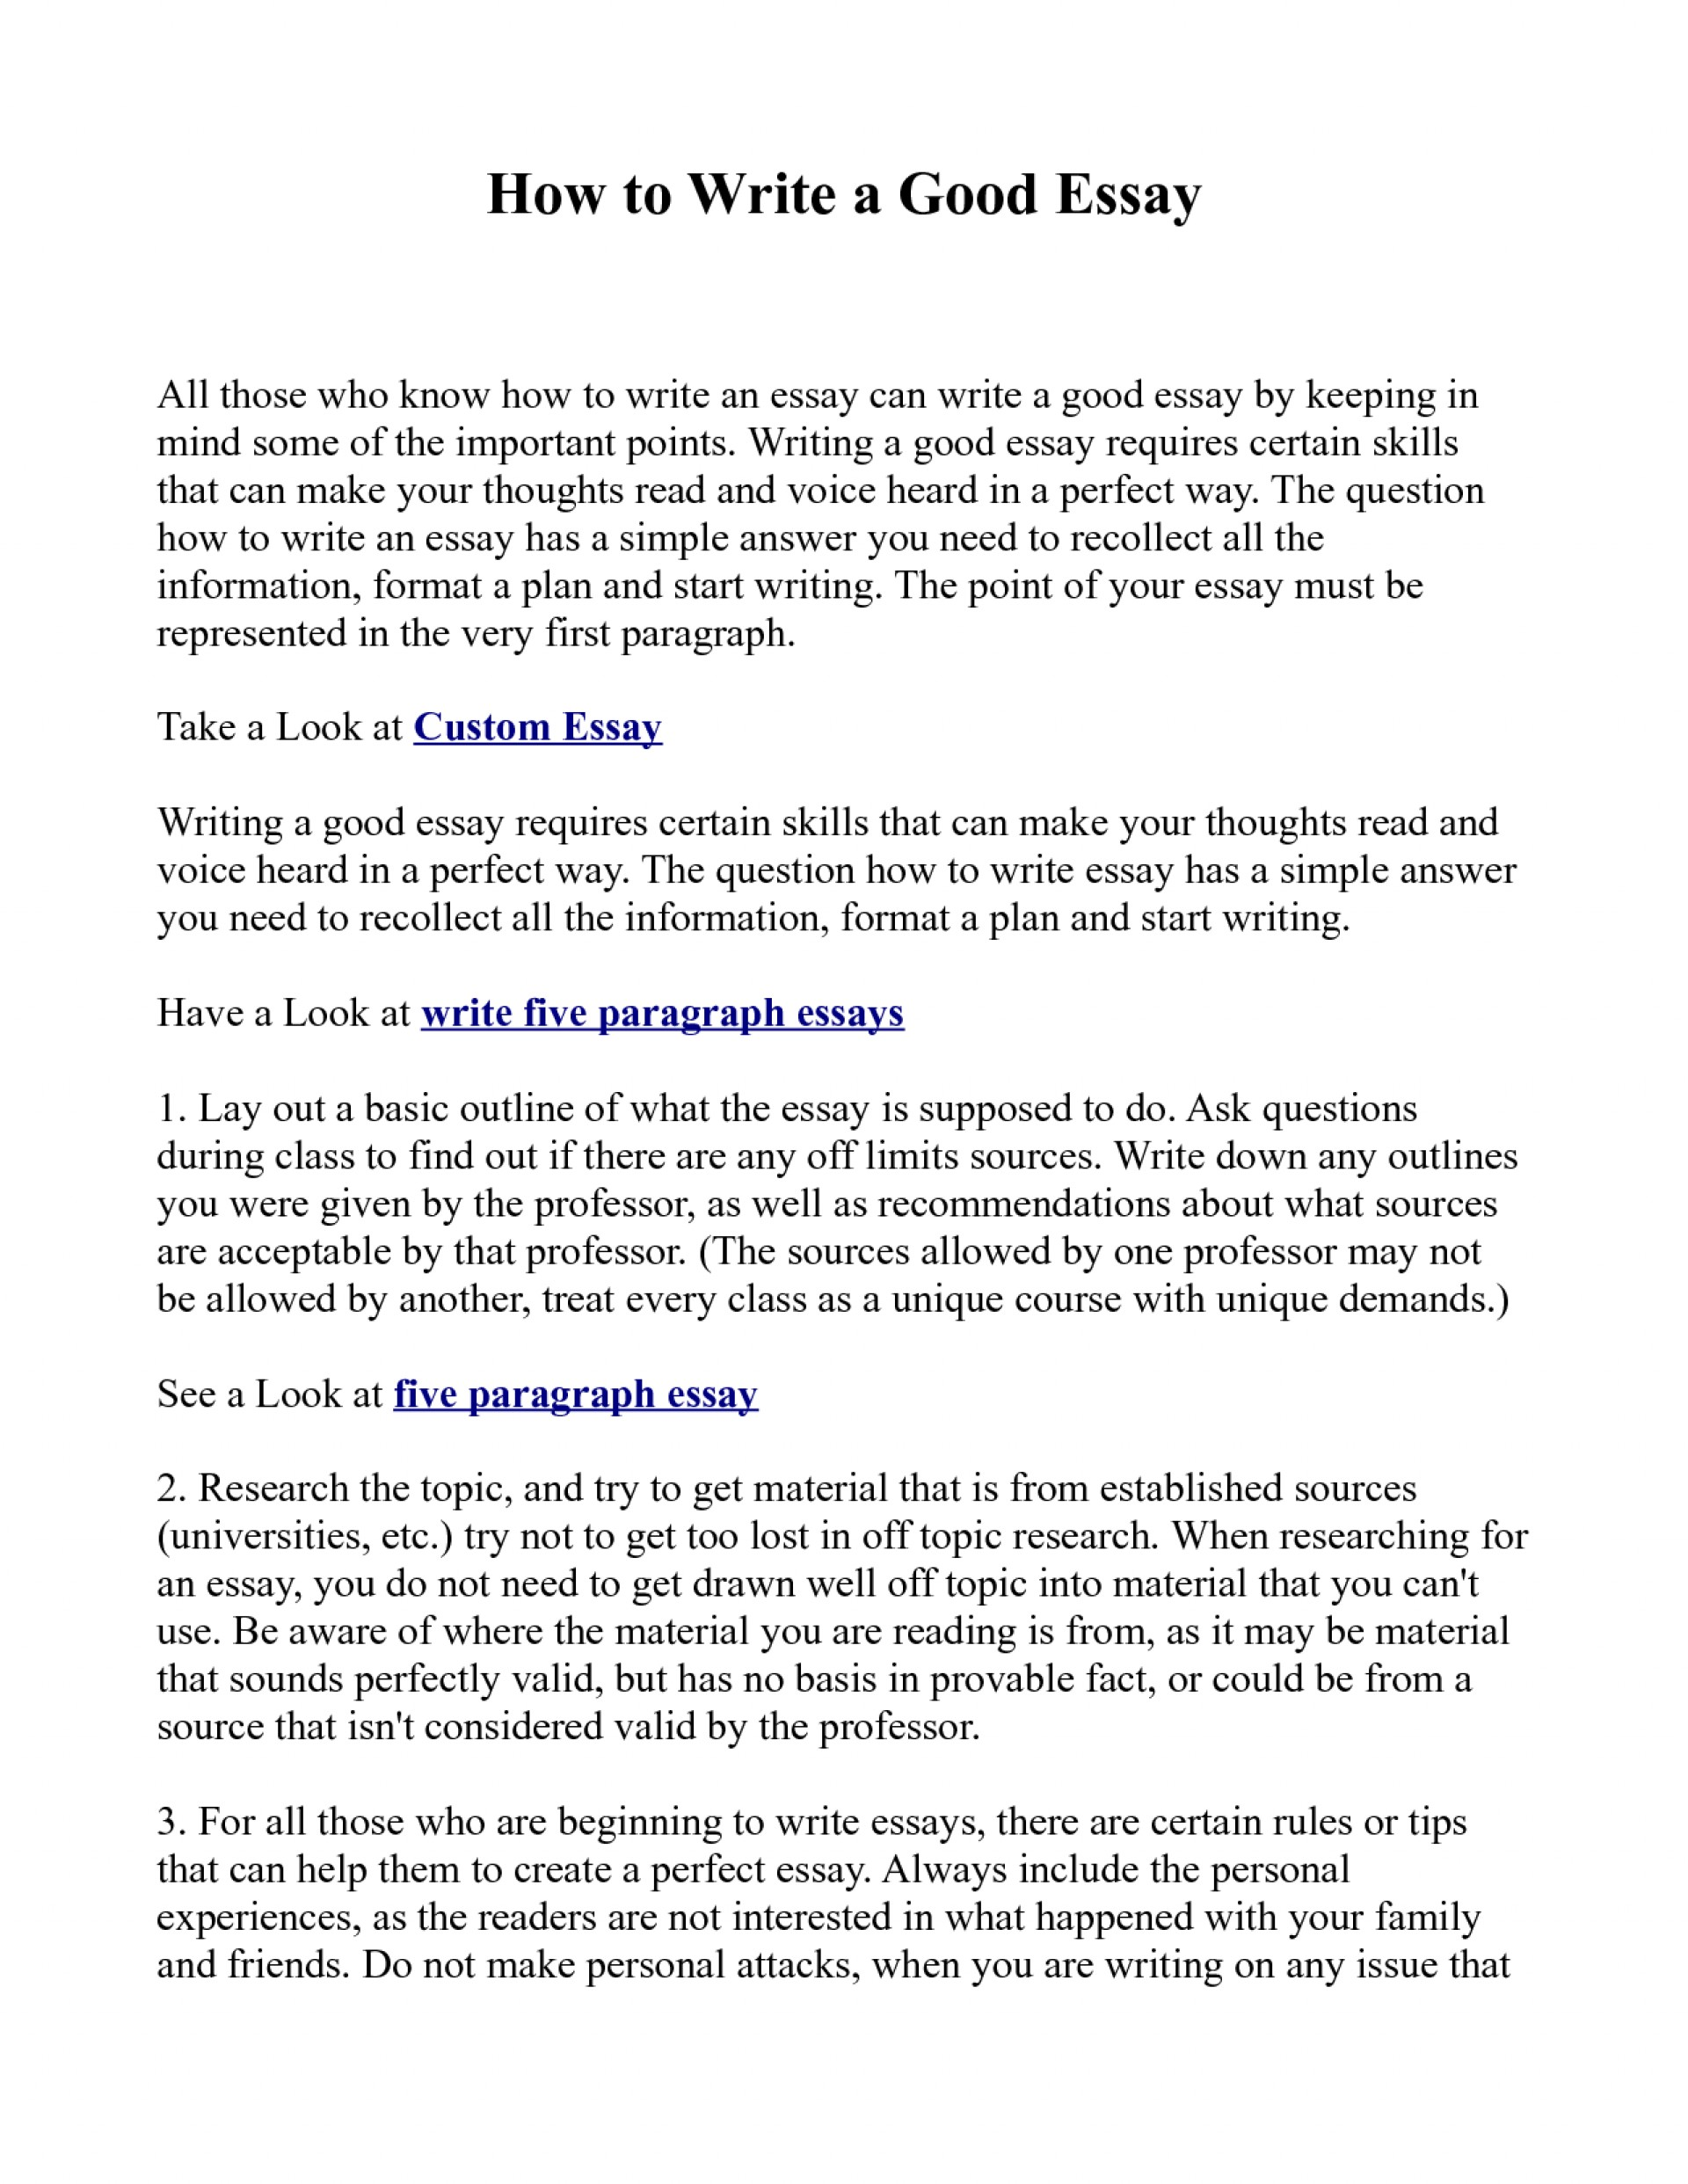 008 Best Essay Topics Ex1id5s6cl Surprising Research Paper For College Student High School Argumentative 1920